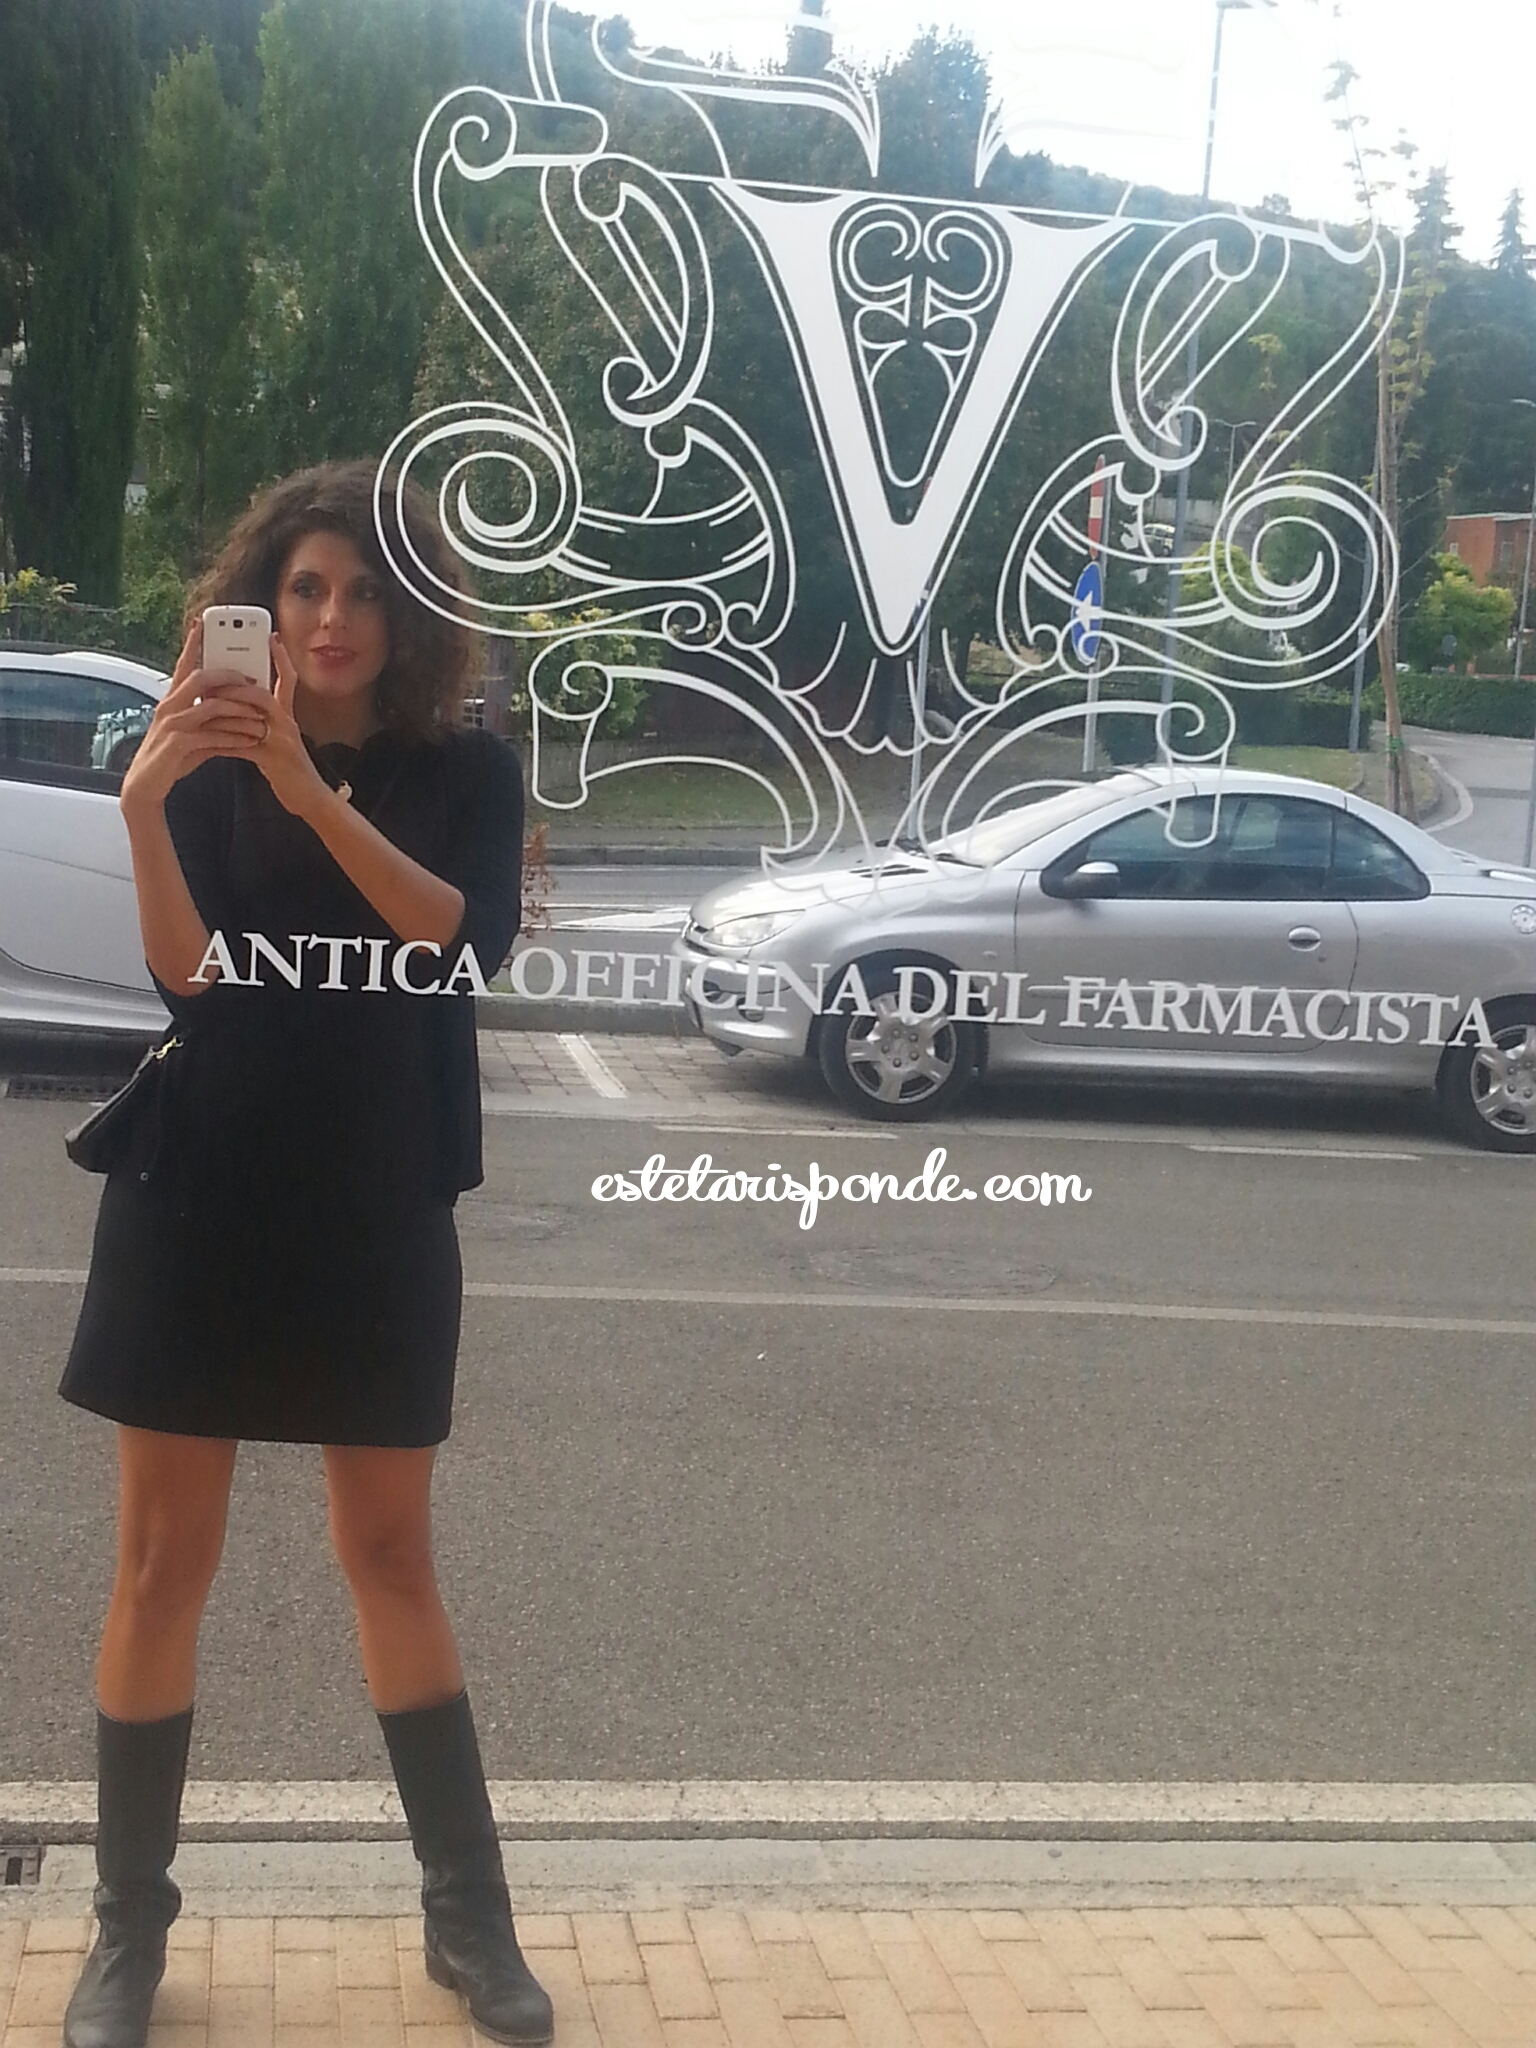 Antica Officina del Farmacista Dr. Vranjes